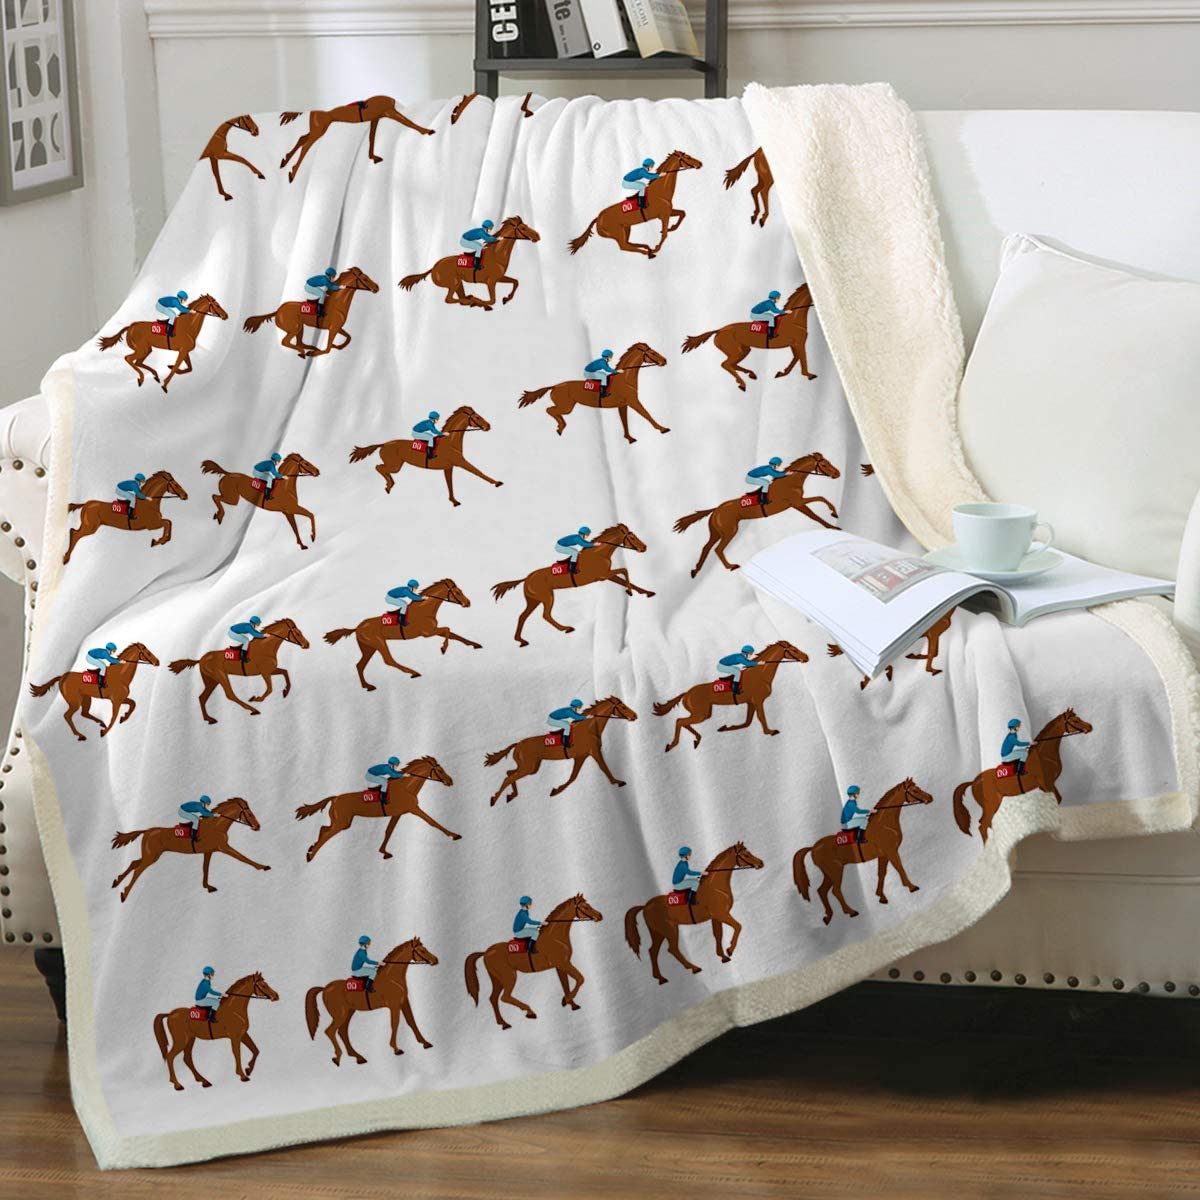 60x80 Sleepwish Horse Sherpa Fleece Blanket Animal Vintage Plush Throw Blanket Fuzzy Soft Blanket Black and White Running Horses Lightweight Cozy Plush Bedspreads for Kids and Adults Twin